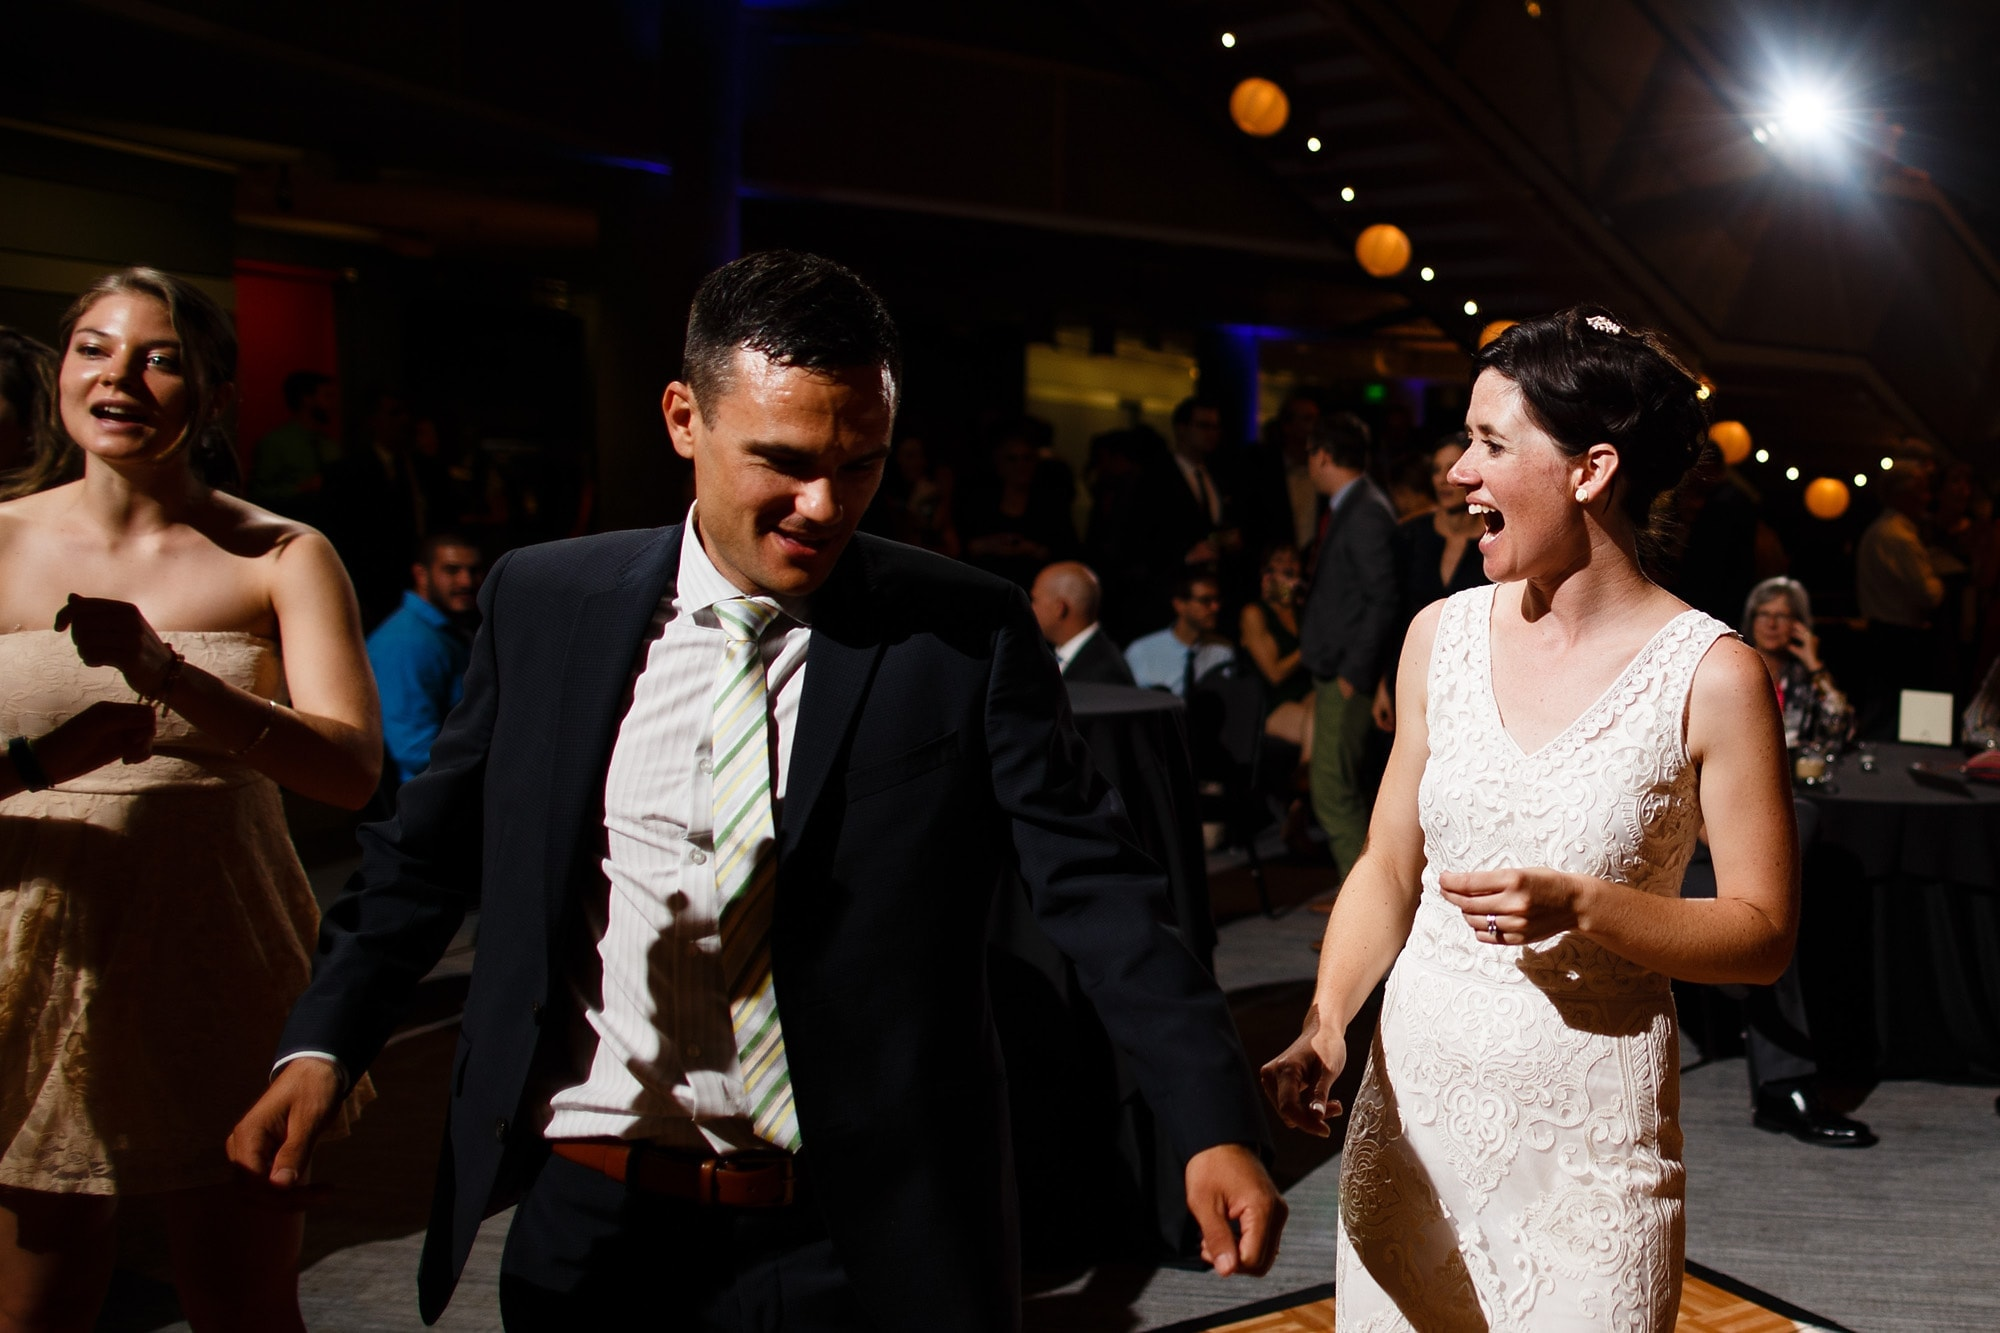 Denver Museum of Nature and Science wedding photos by Justin Edmonds Photography